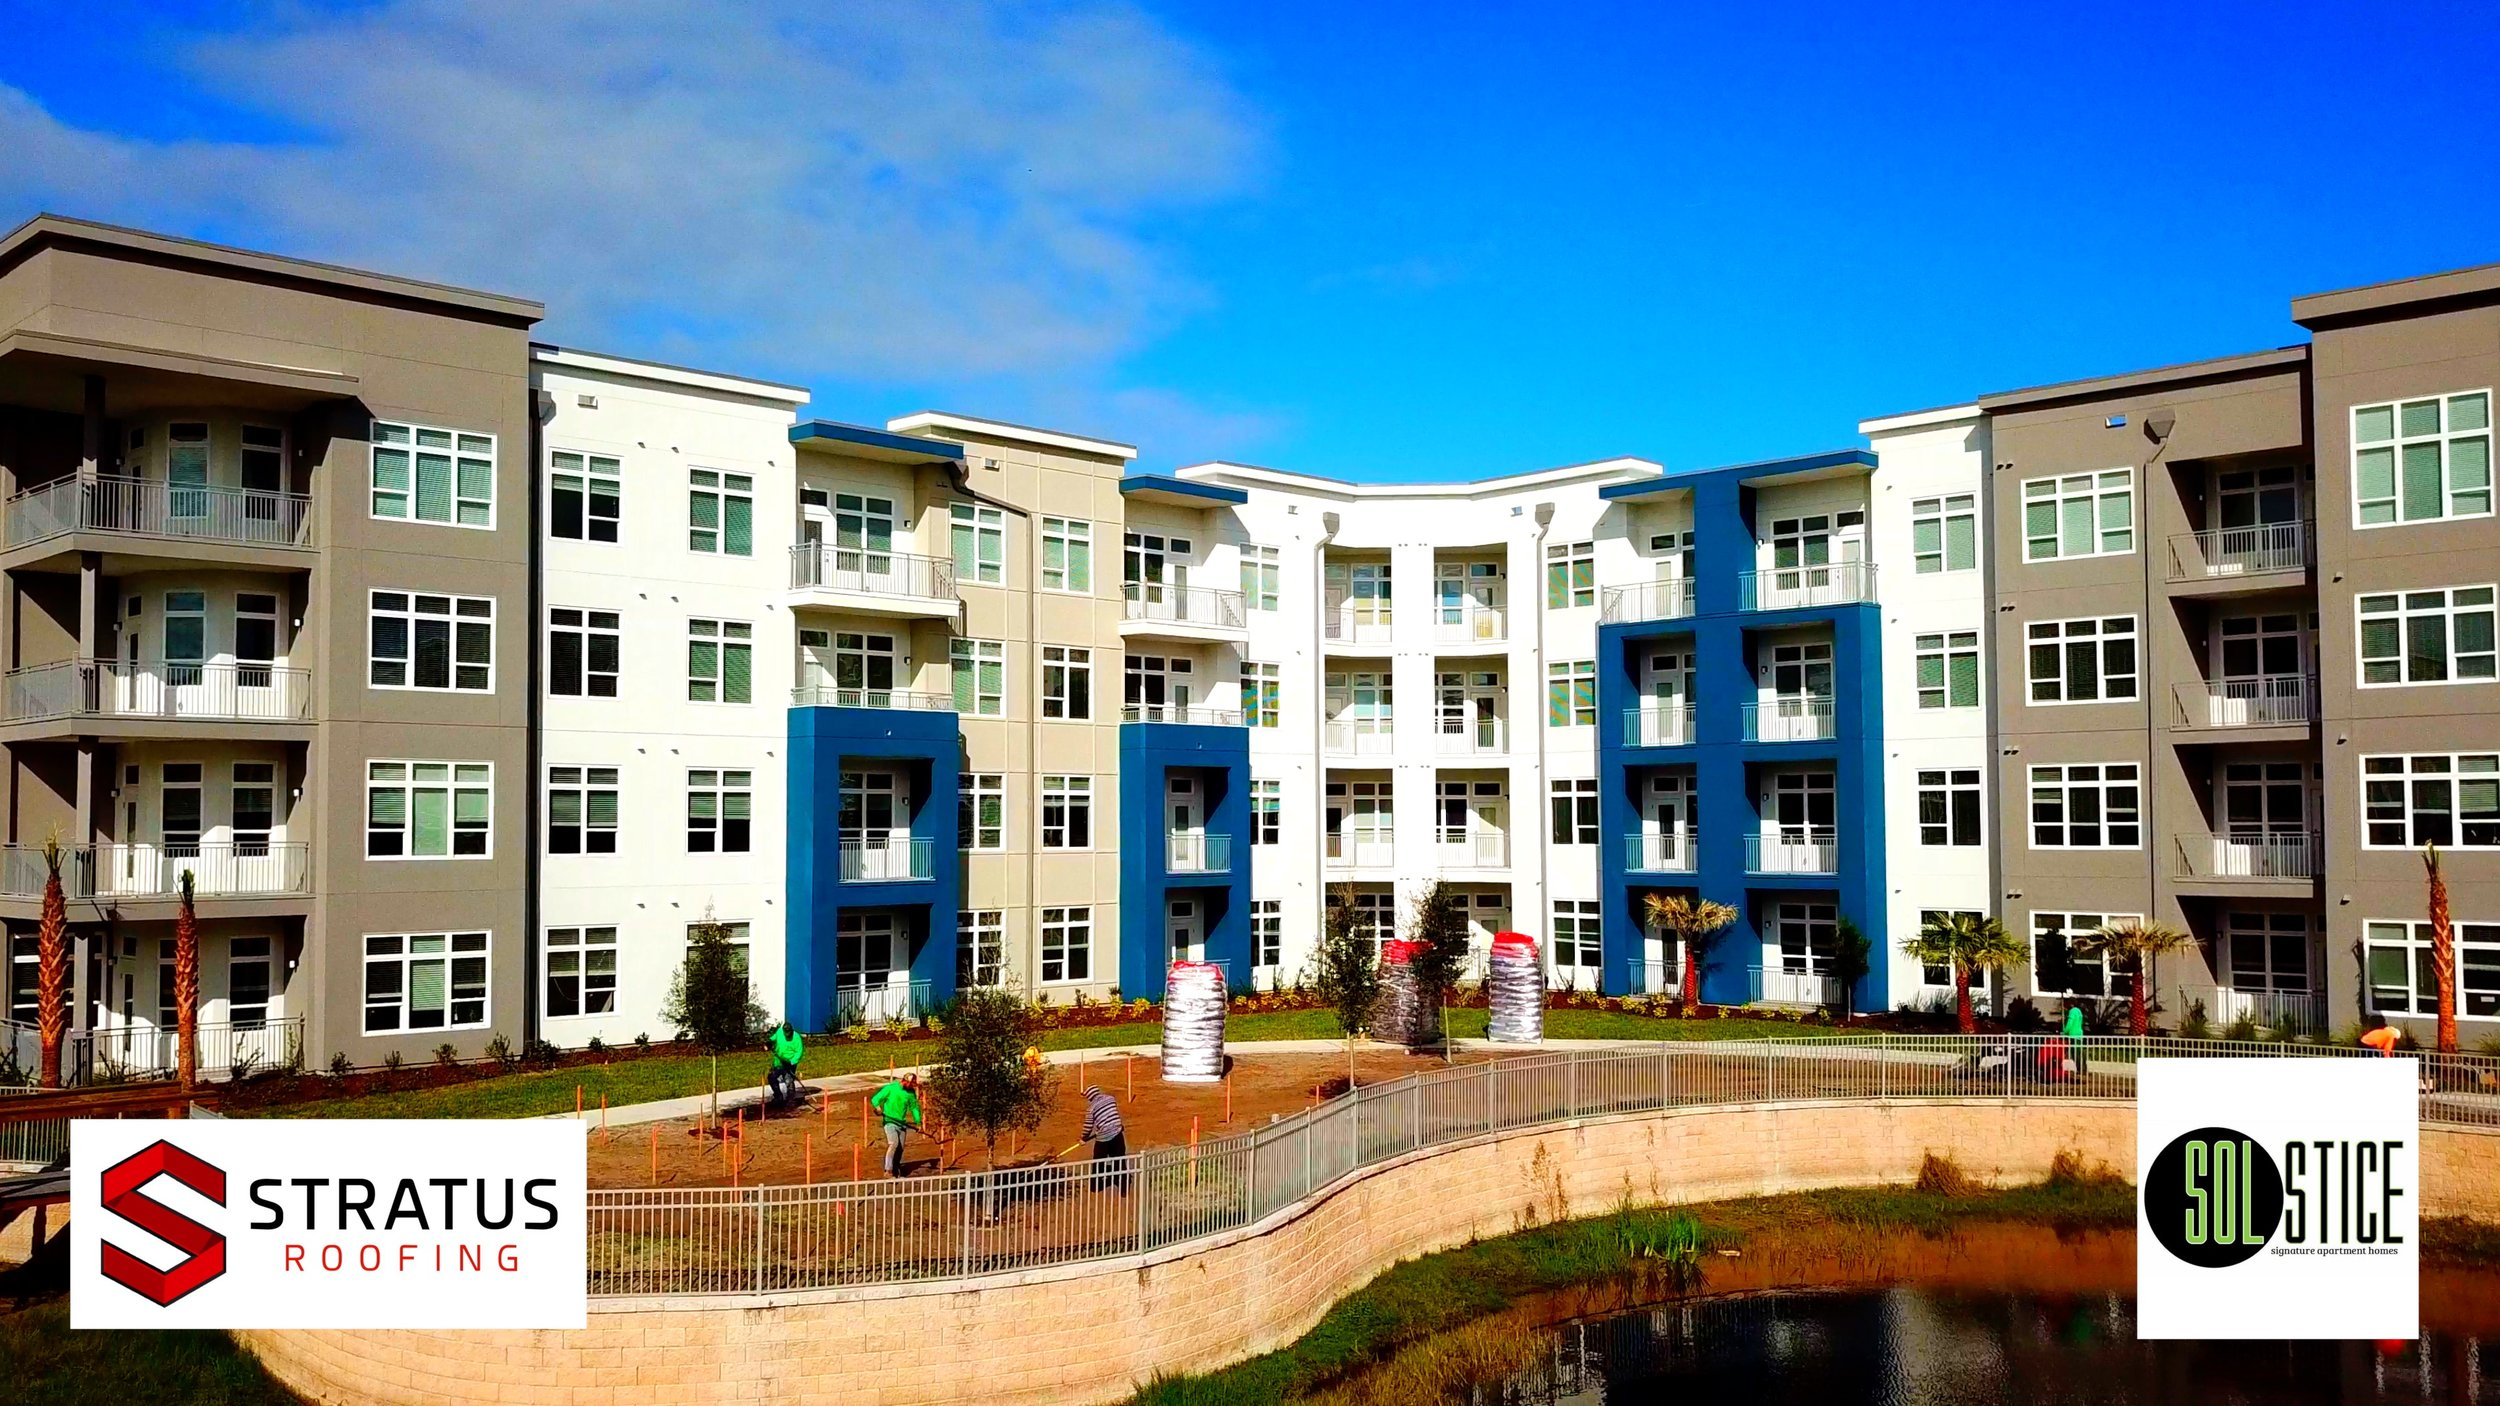 Property Summary - Solstice Apartments is the newest mid-rise luxury apartment community in the International Drive neighborhood of Orlando, Florida. Solstice Apartments is home to 309 luxury apartment homes and rich in best-in-class signature amenities. From the zero-entry pool, to the expansive exercise room with indoor hot and cold plunge pools, to the resident game room with an indoor golf simulator, Solstice will offer it all. Welcome to Solstice Apartments, a Northwood Ravin signature community. - SolsticeOrlando.com